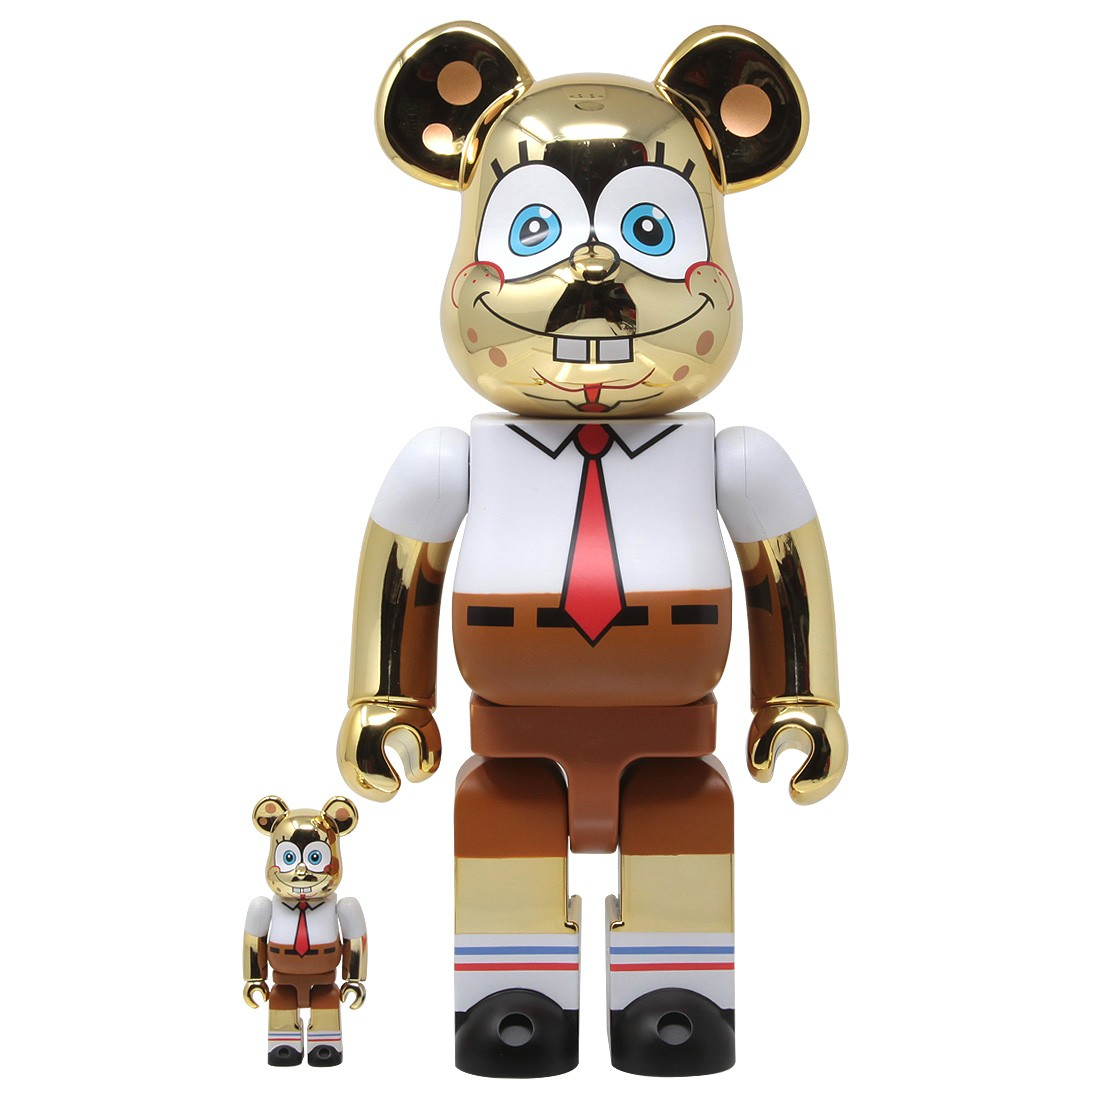 Medicom SpongeBob SquarePants Gold Chrome 100% 400% Bearbrick Figure Set (gold)